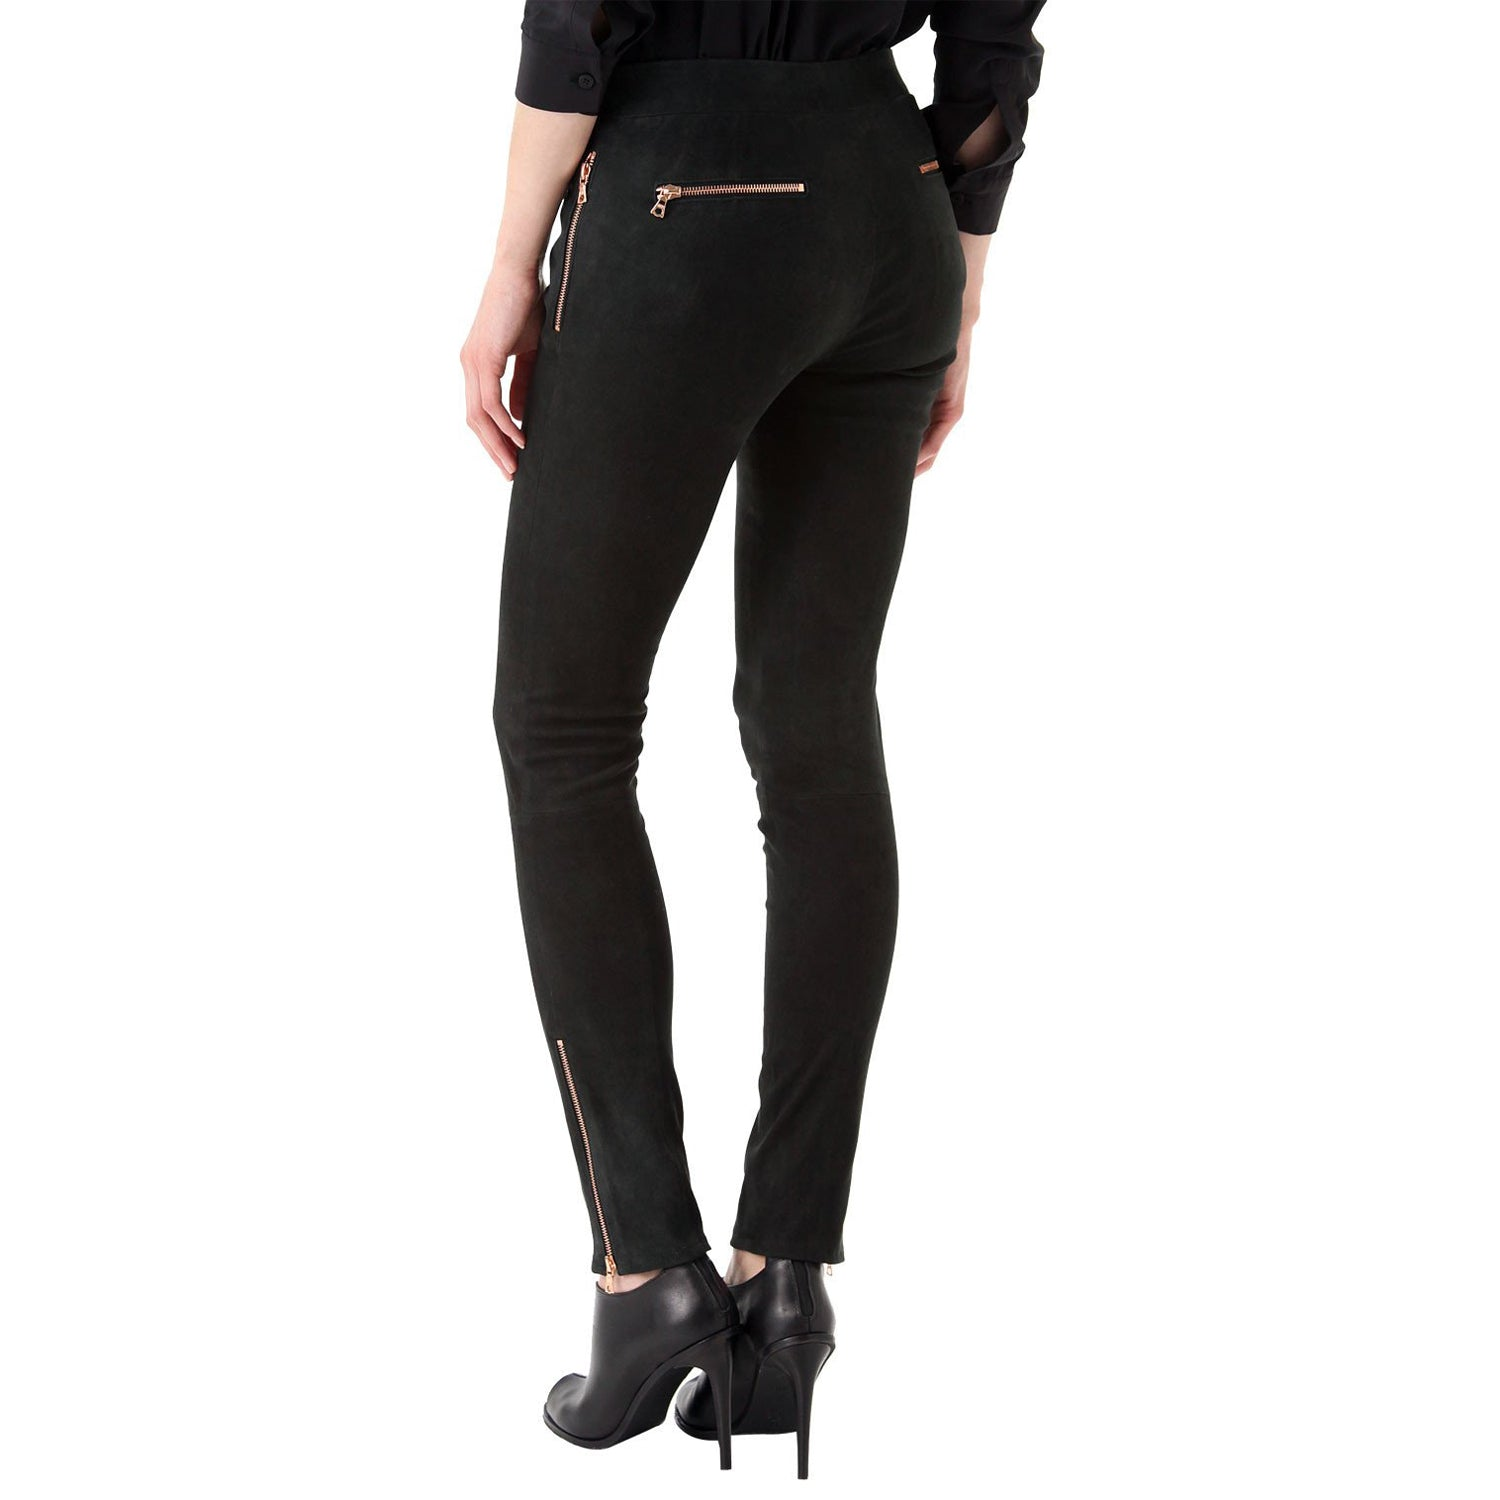 Black Suede leather pants - Lusso Leather - 2